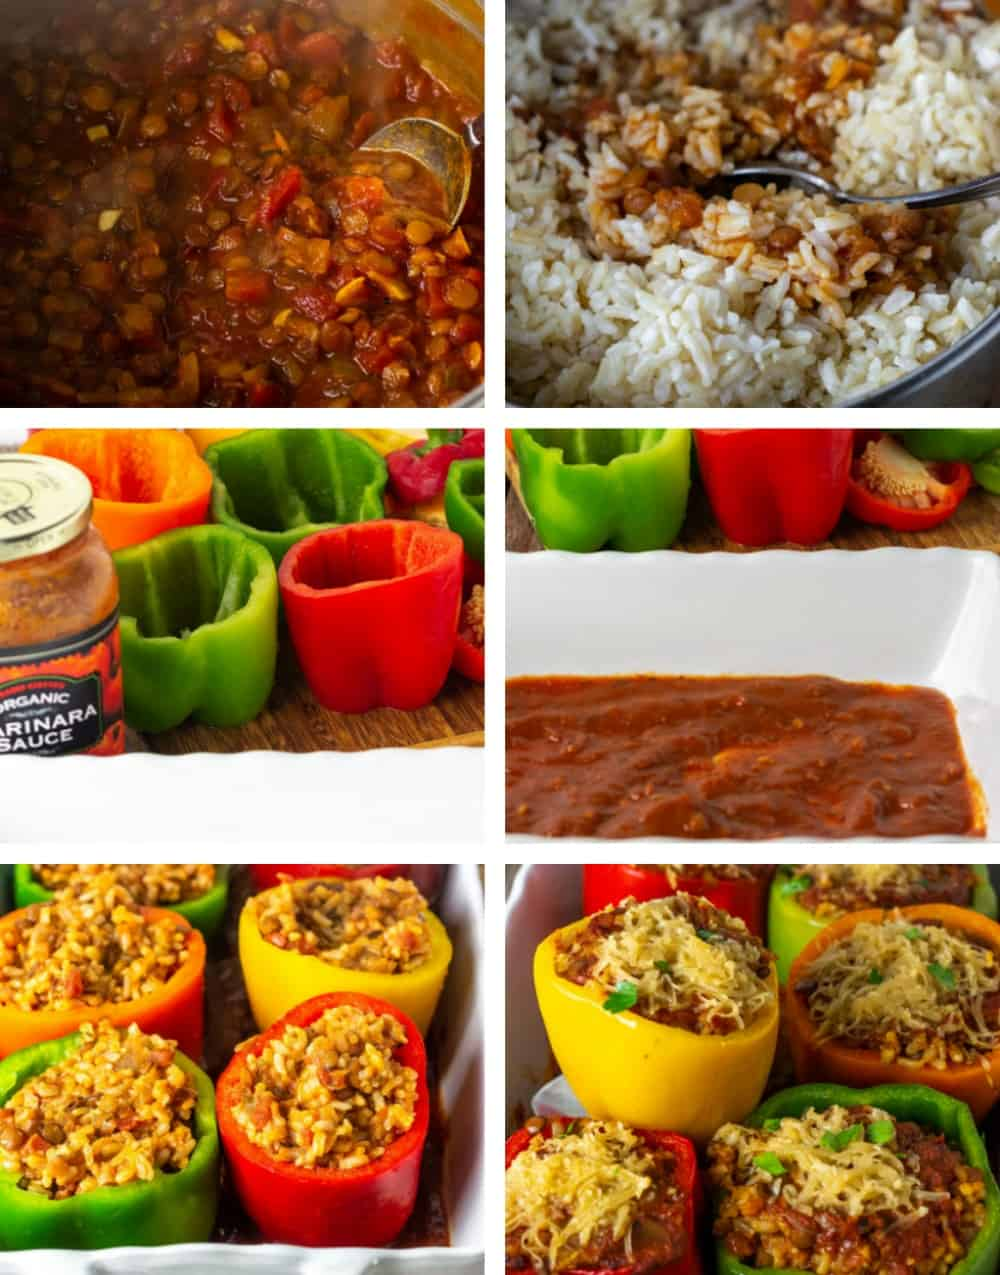 Step by step collage on how to make stuffed bell peppers